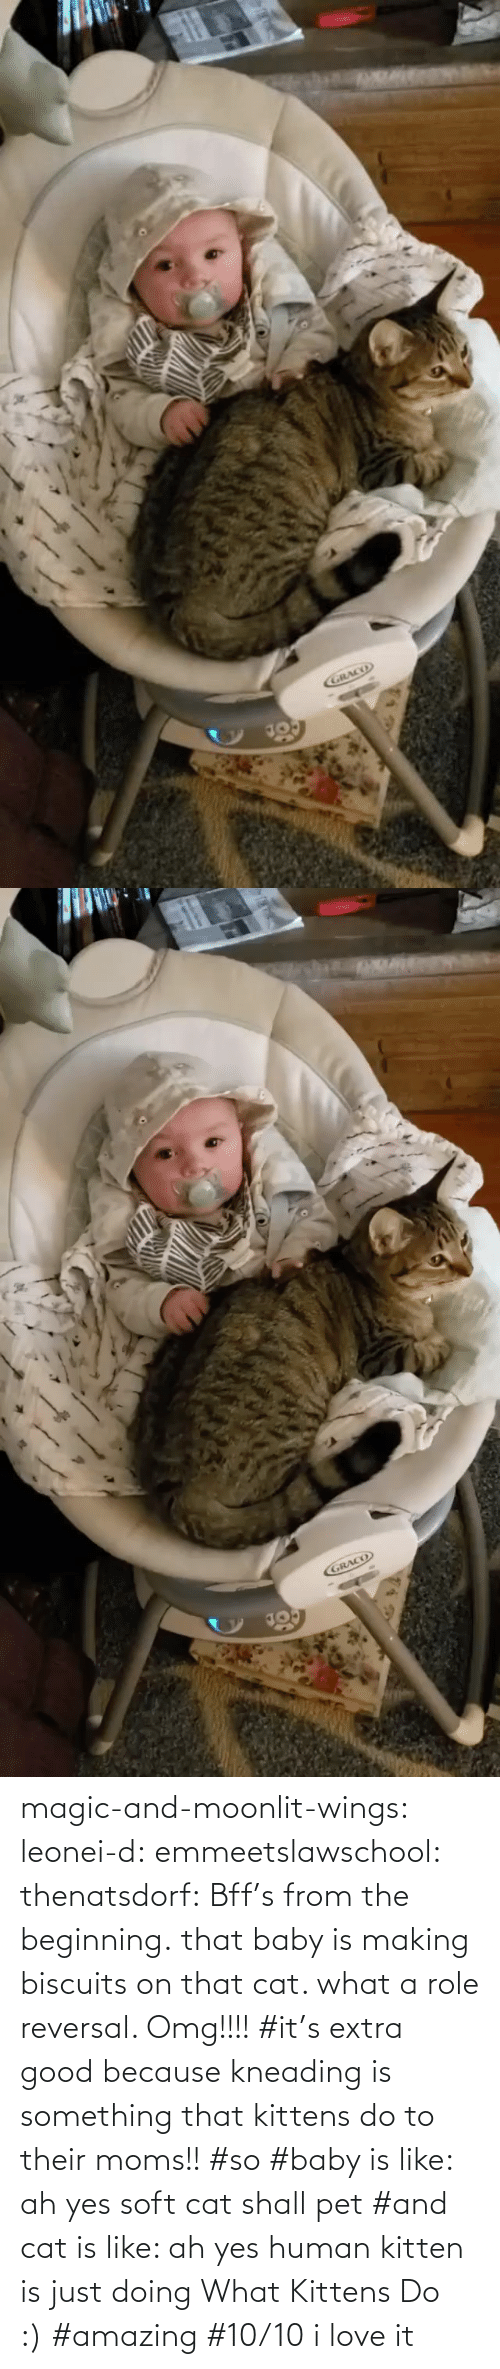 Baby: magic-and-moonlit-wings: leonei-d:  emmeetslawschool:  thenatsdorf: Bff's from the beginning. that baby is making biscuits on that cat. what a role reversal.    Omg!!!!     #it's extra good because kneading is something that kittens do to their moms!! #so #baby is like: ah yes soft cat shall pet #and cat is like: ah yes human kitten is just doing What Kittens Do :) #amazing #10/10 i love it